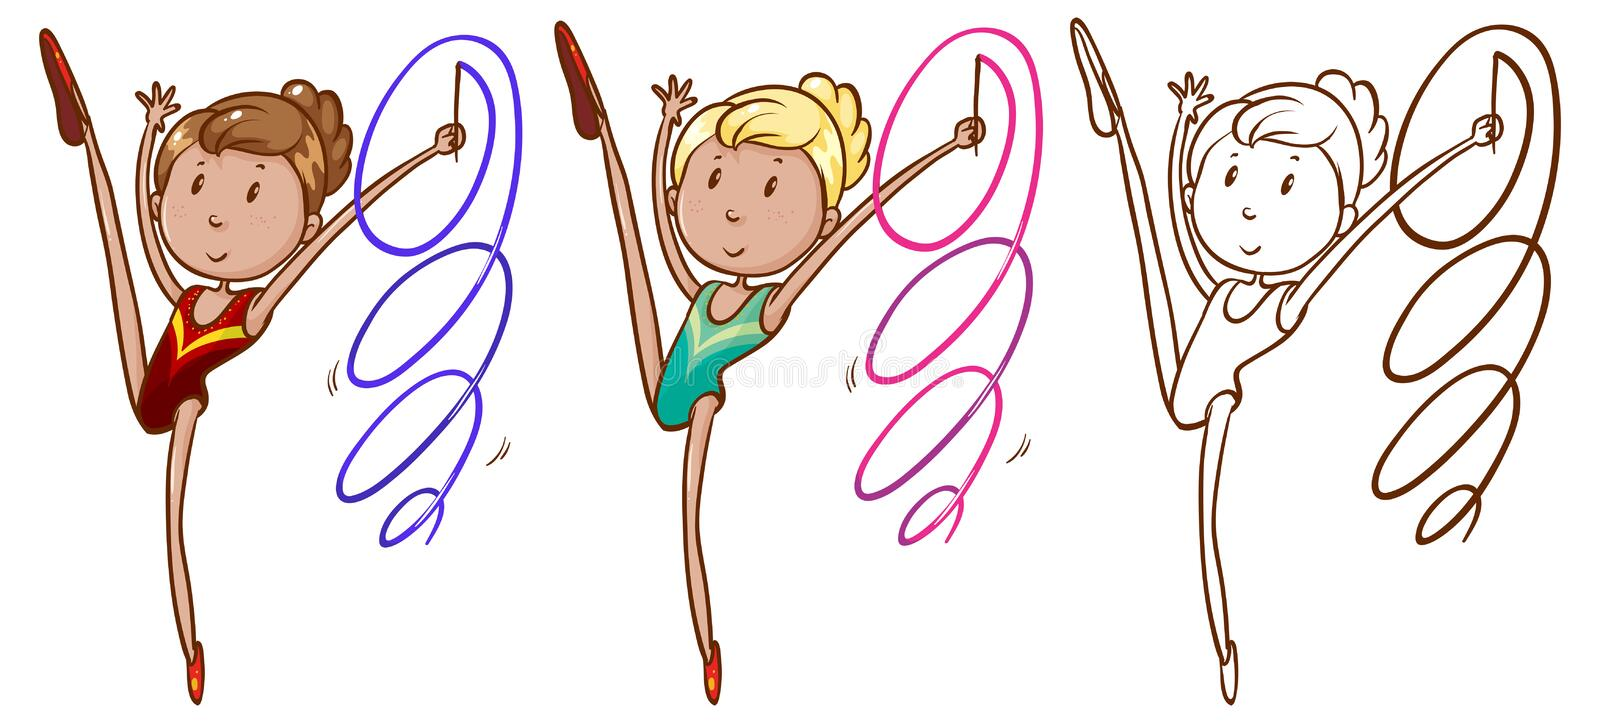 Doodle character for girl doing gymnastic with ribbon. Illustration royalty free illustration